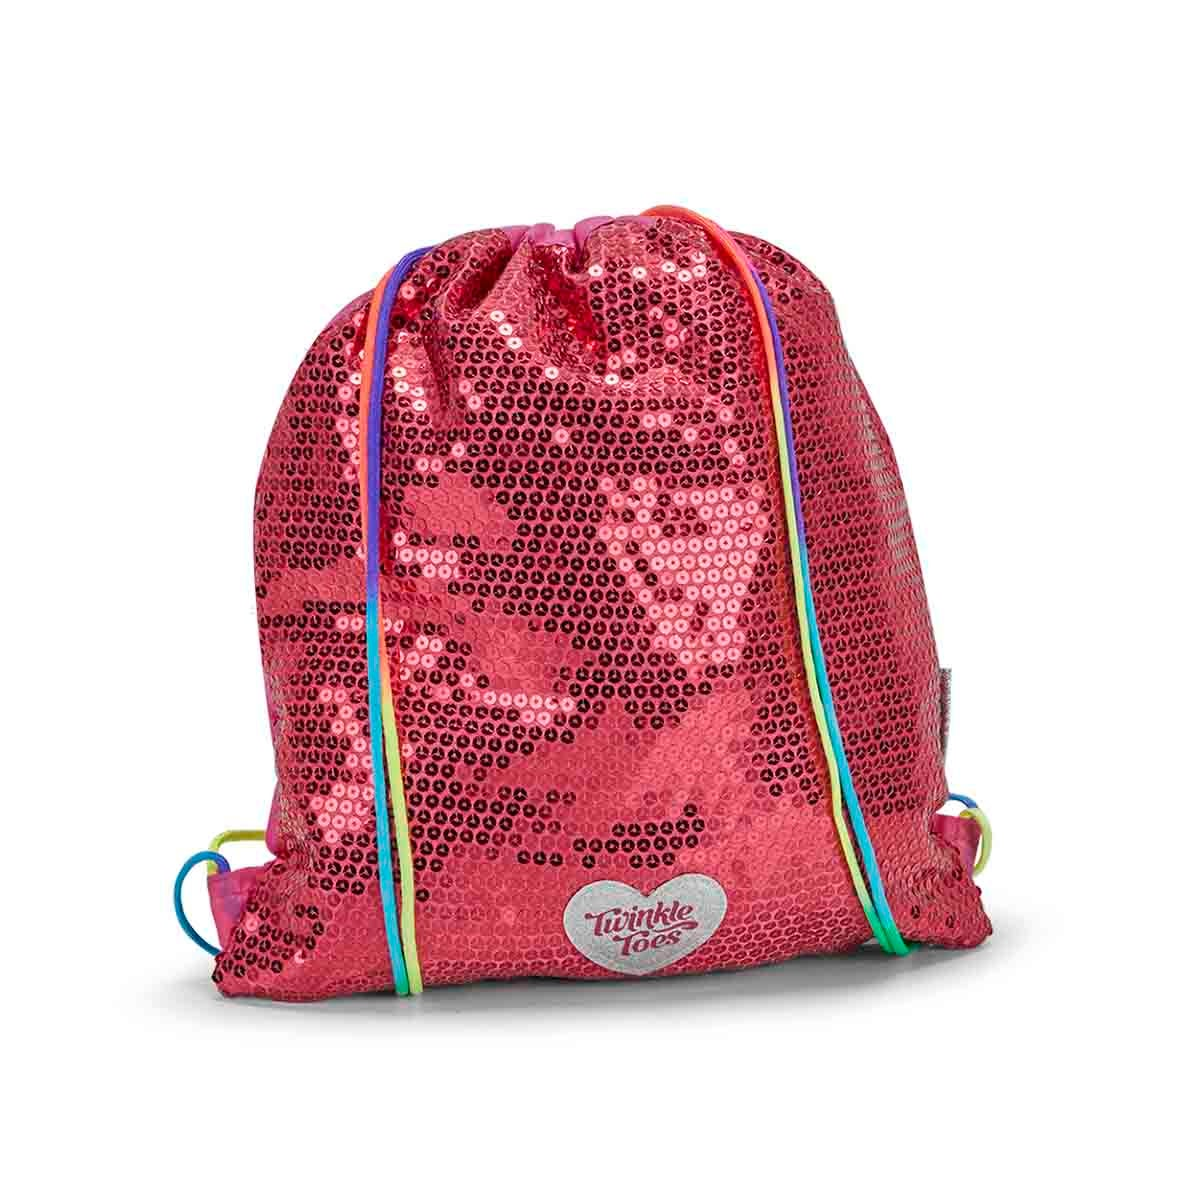 Girls TWINKLE TOES pink drawstring backpack